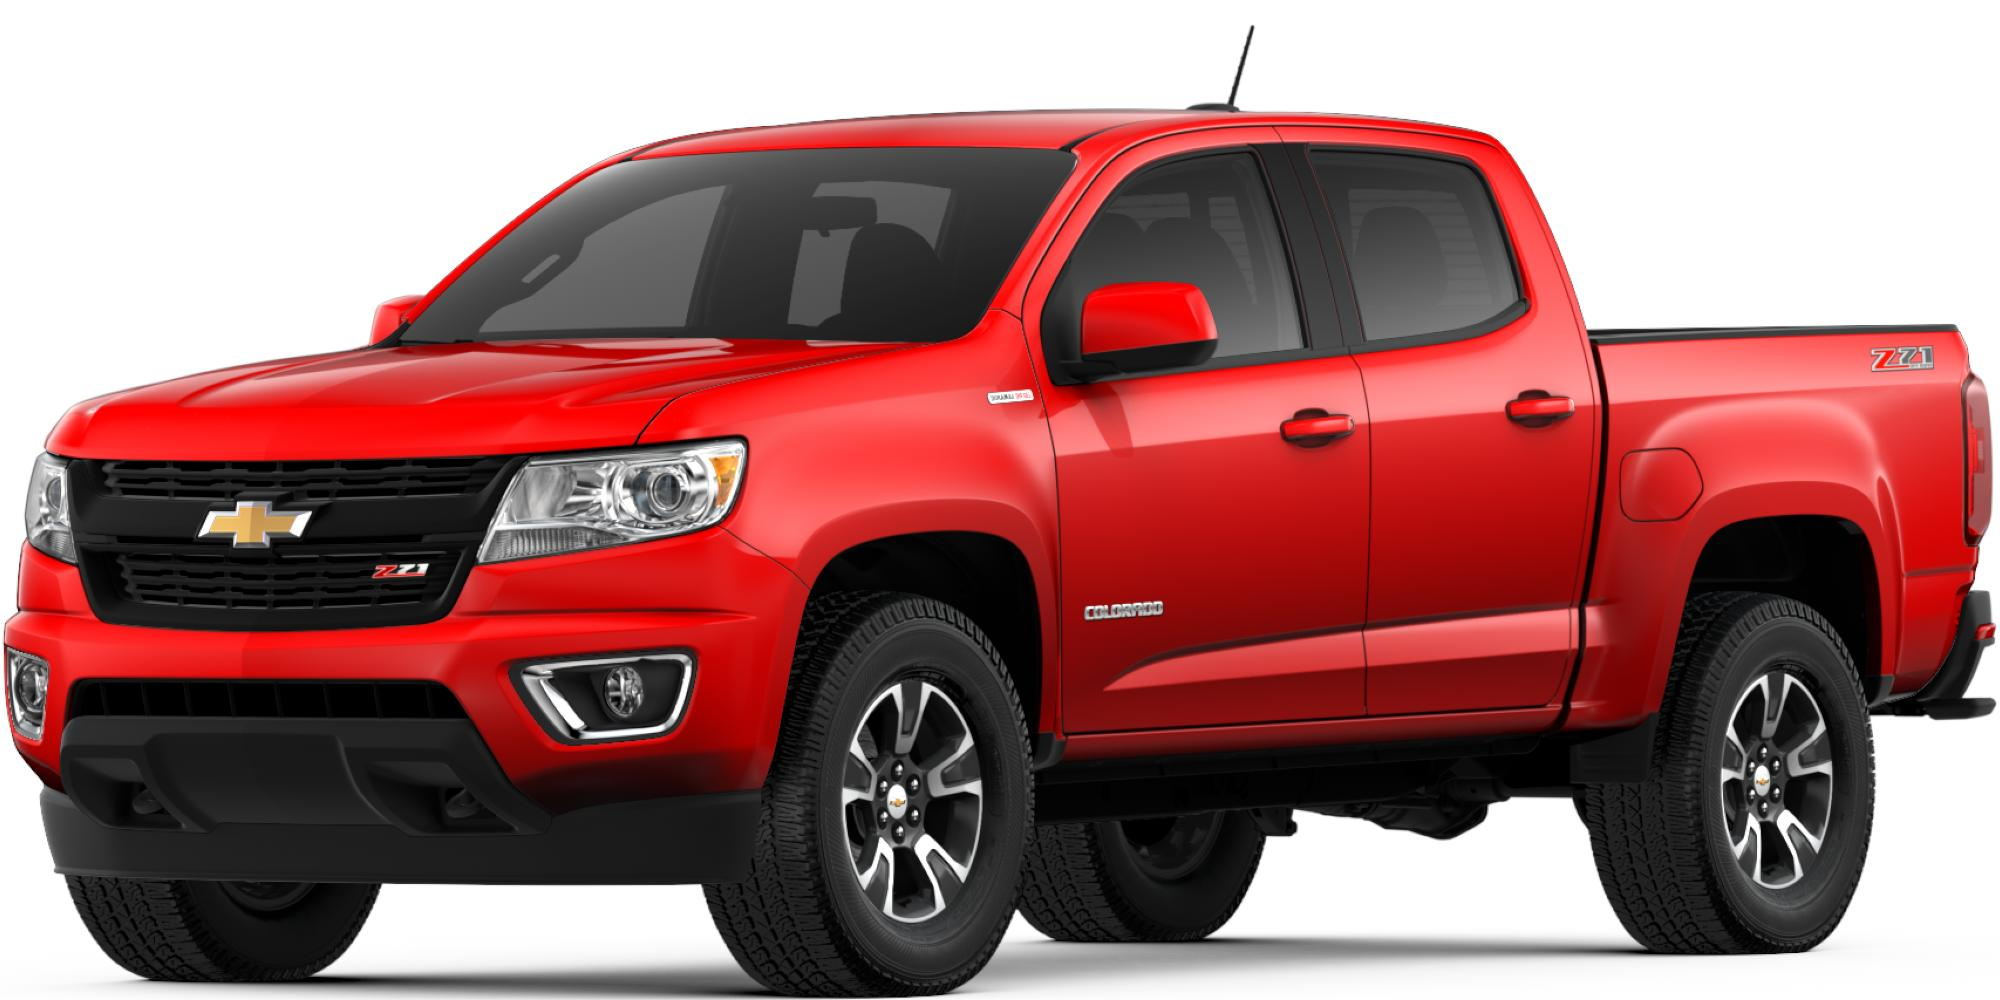 chevrolet trax images with Colorado Mid Size Truck on Watch further Car Dashboard Warning Lights The  plete Guide further 2017 further Chevrolet Ss Gets Expressive With Addition Of New Color Choices For 2015 together with Chevrolet Ss Gets Expressive With Addition Of New Color Choices For 2015.